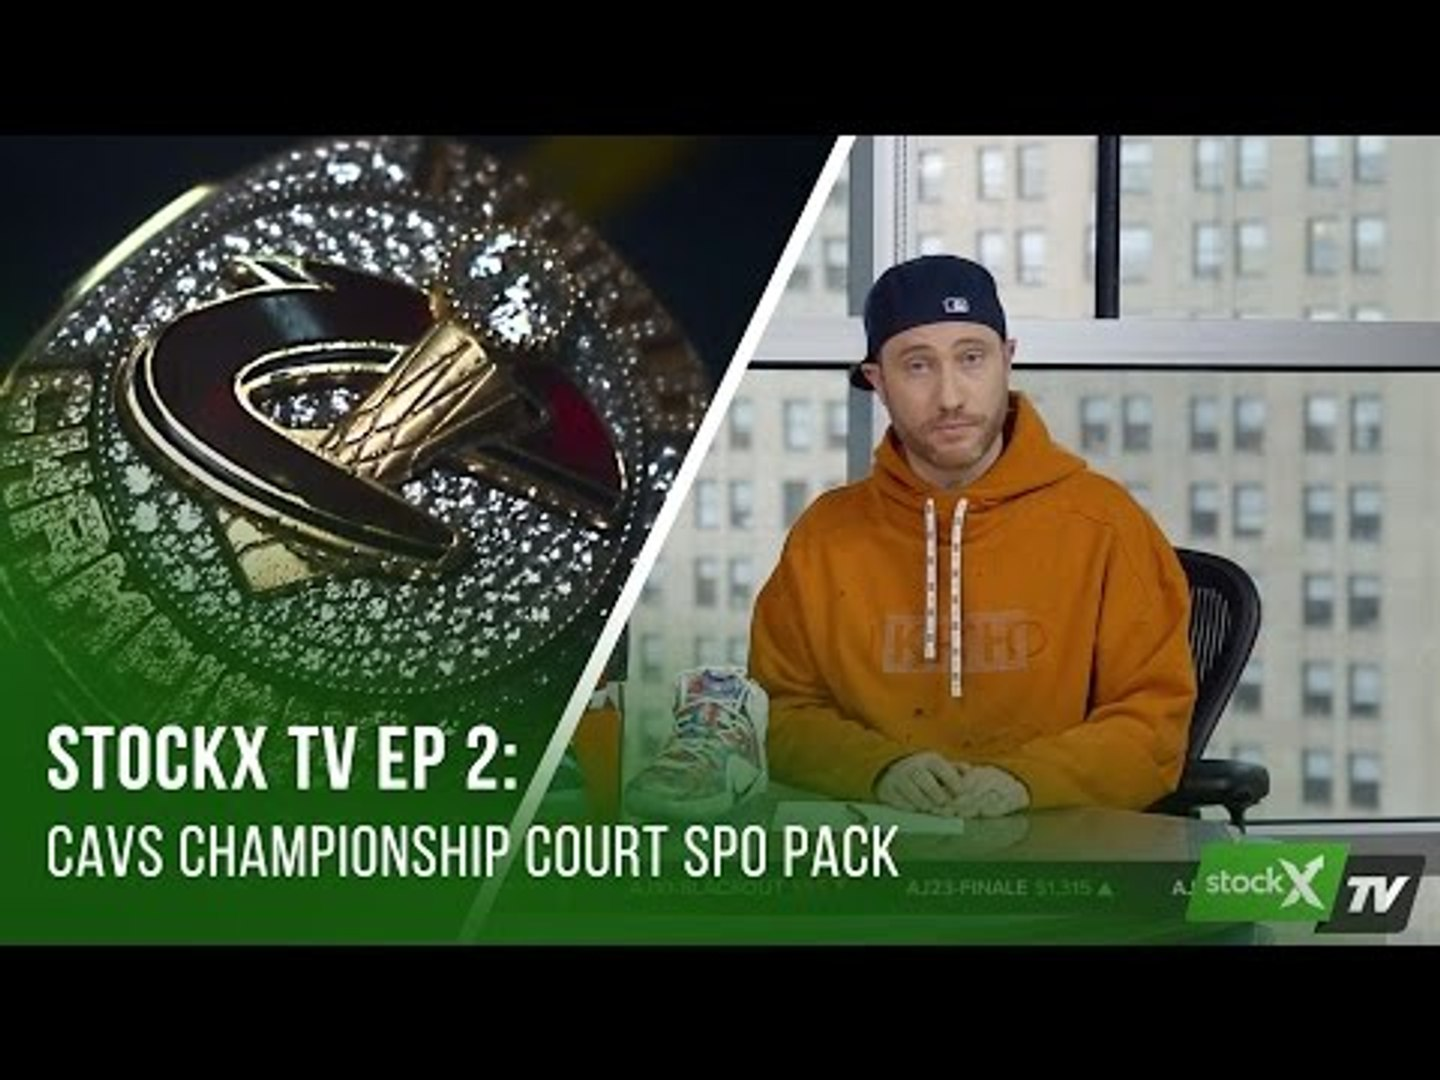 What Goes Into Making the Cavs Championship Court SPO Pack That Raised Almost $100K USD for Charity